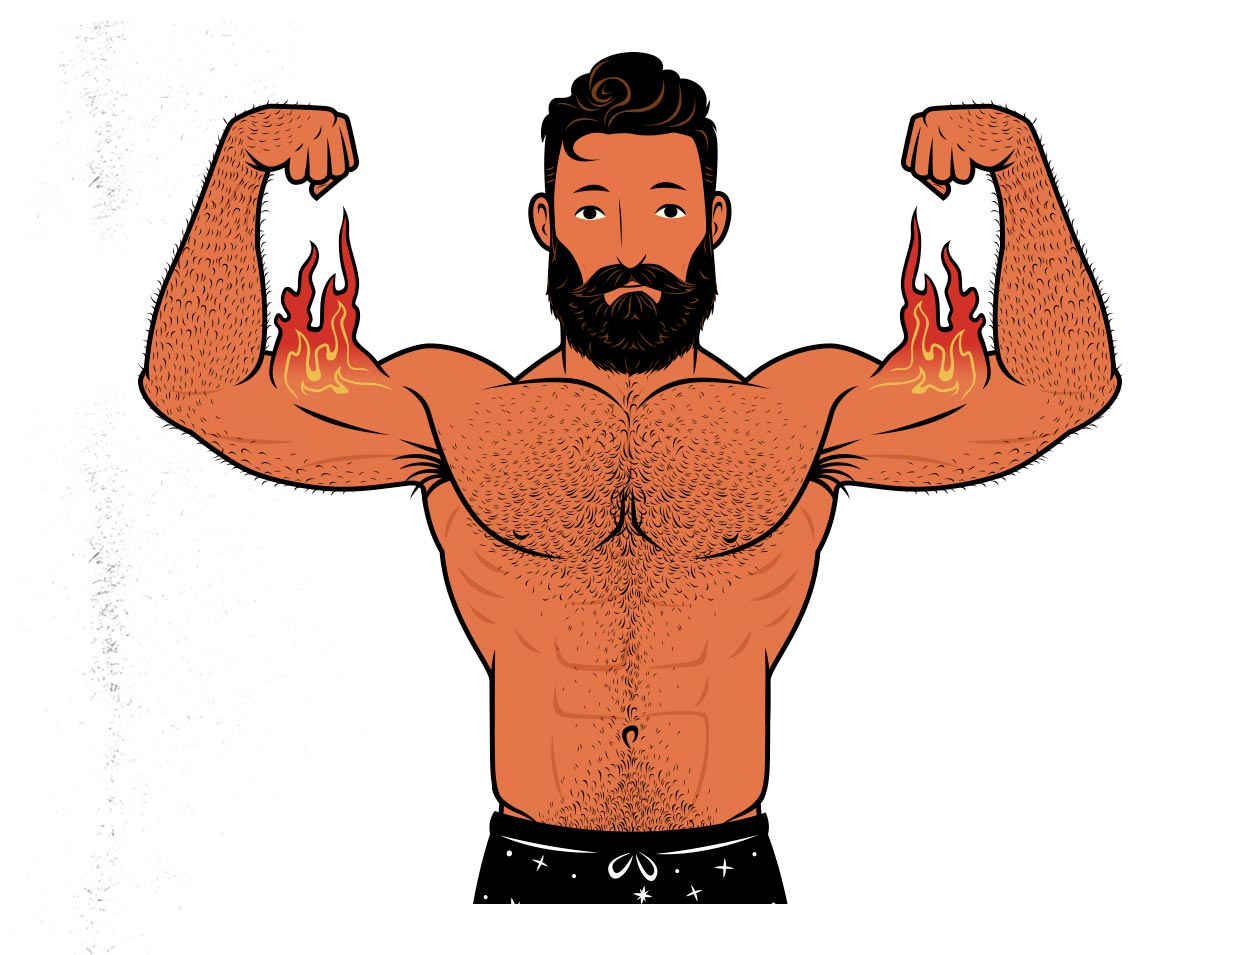 Illustration showing the muscle-building results from hypertrophy training.